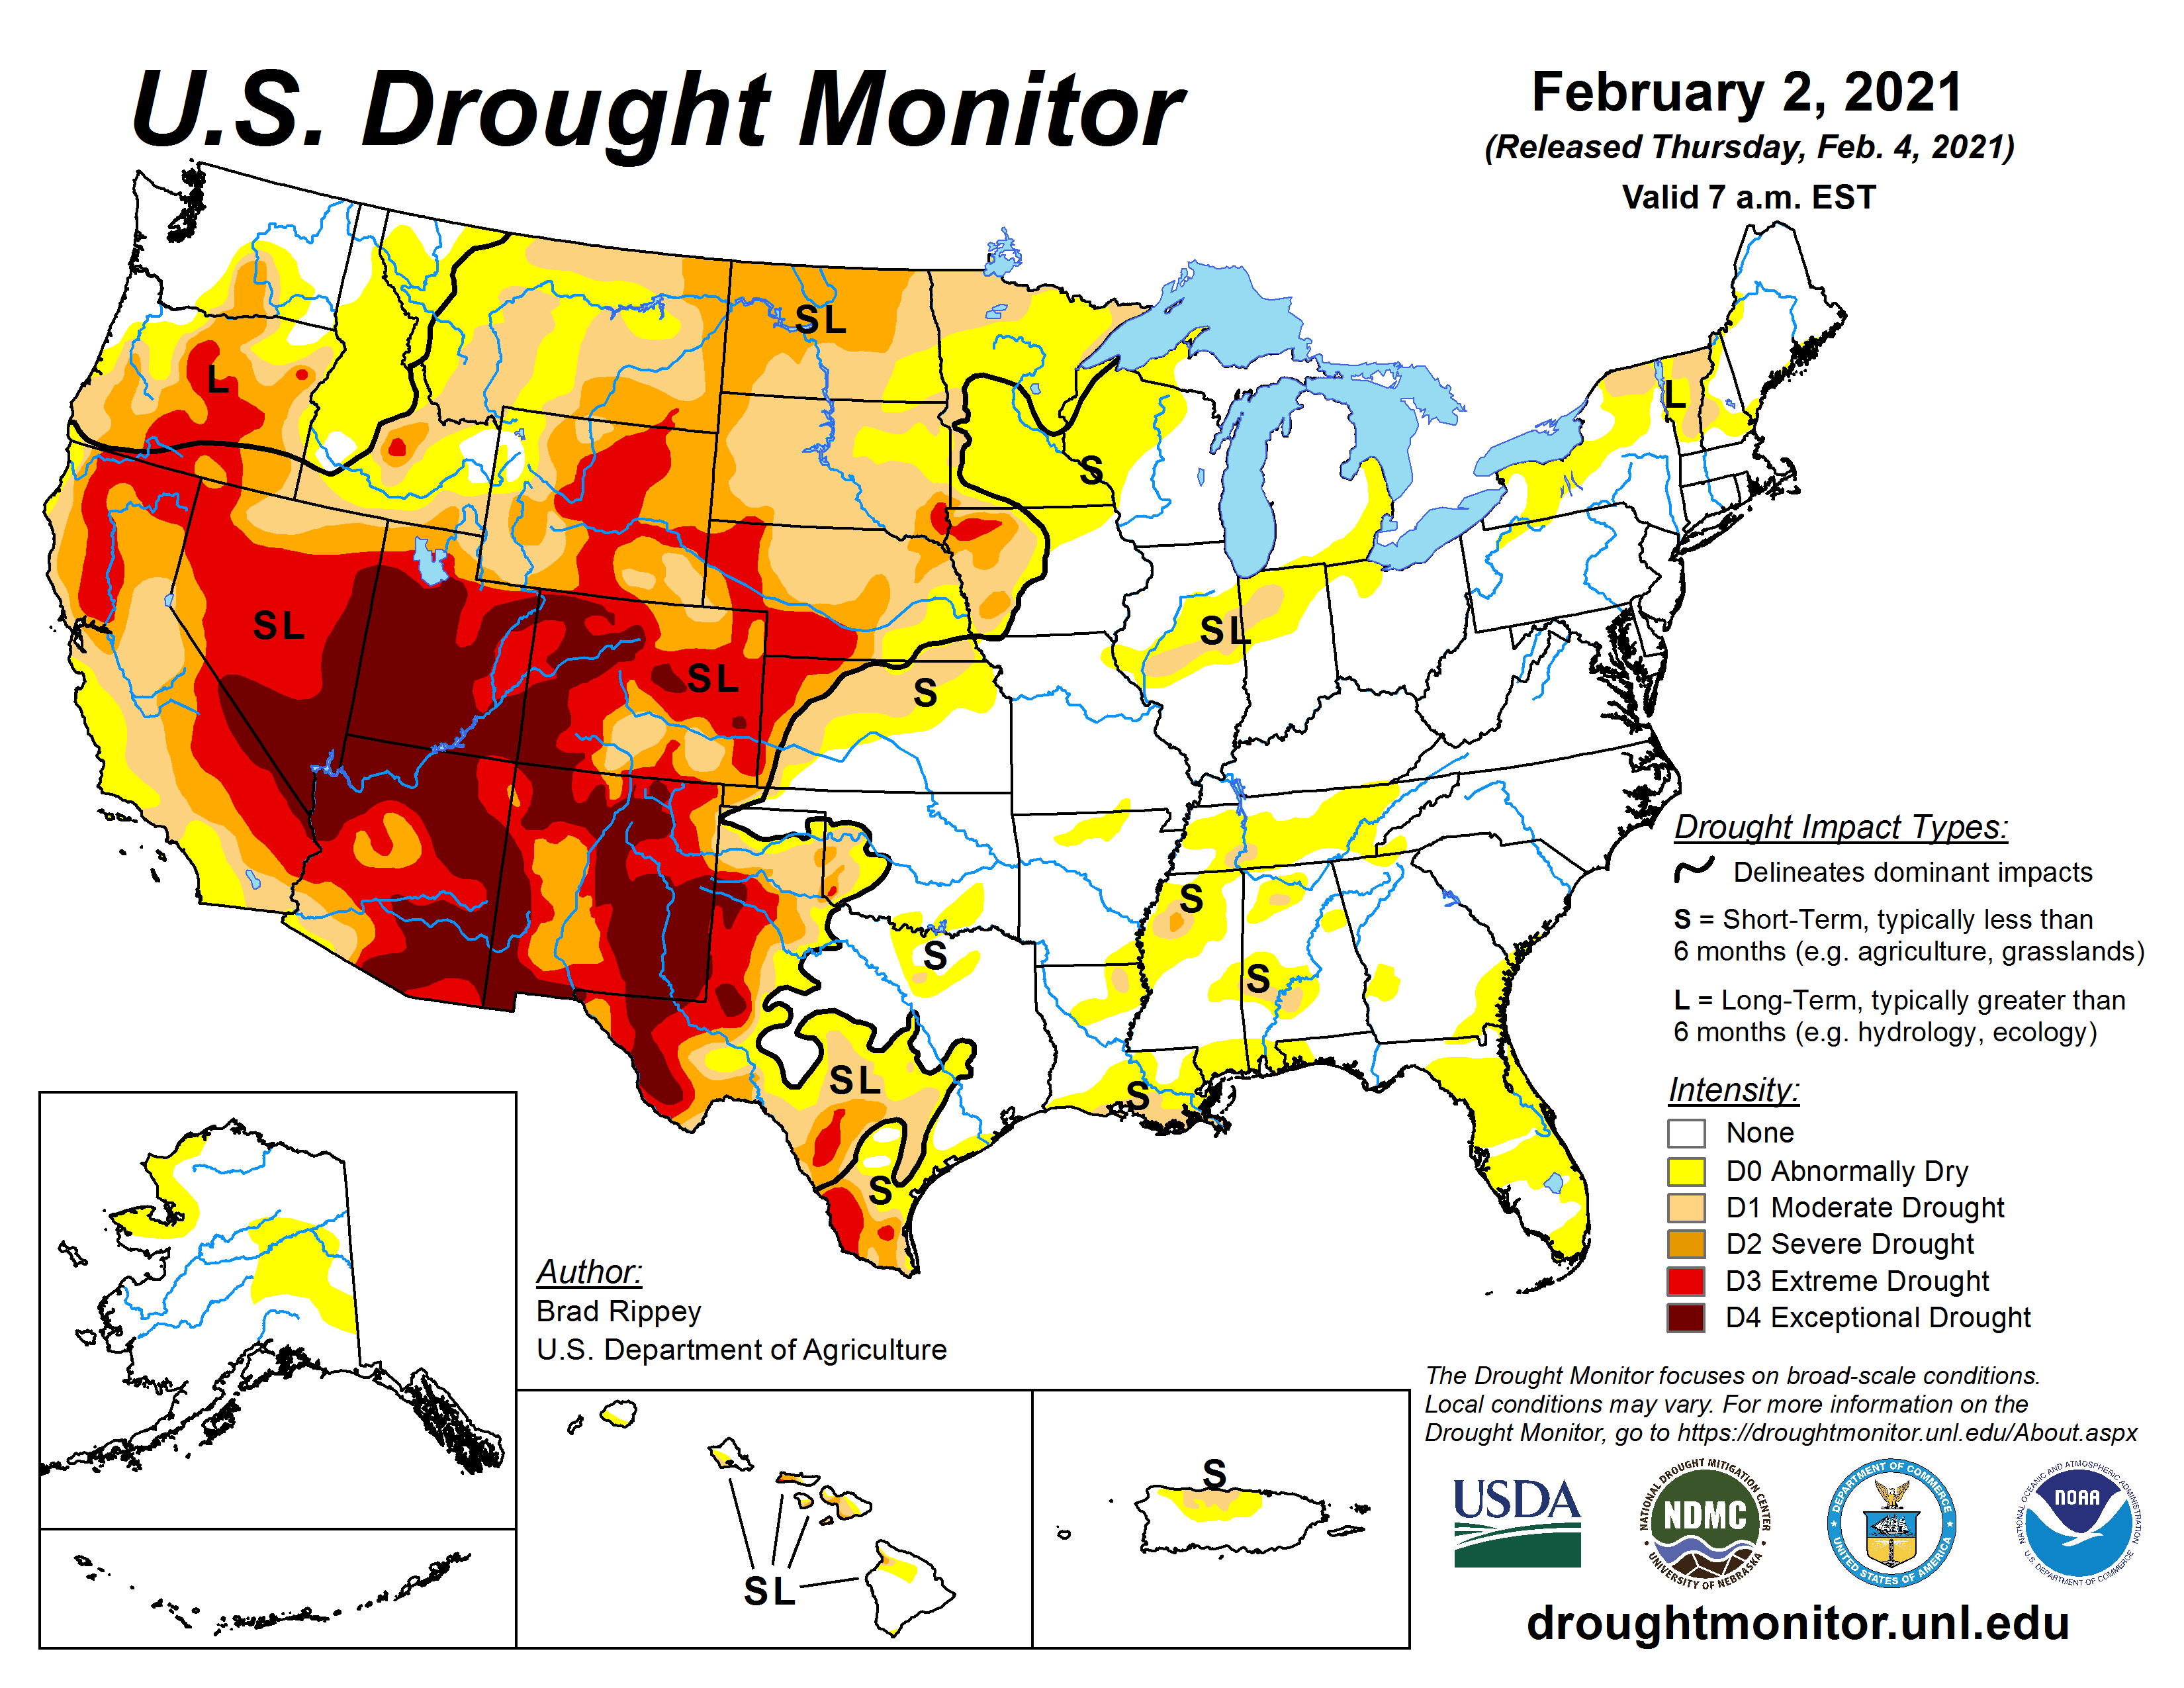 U.S. Drought Monitor, valid February 2, 2021